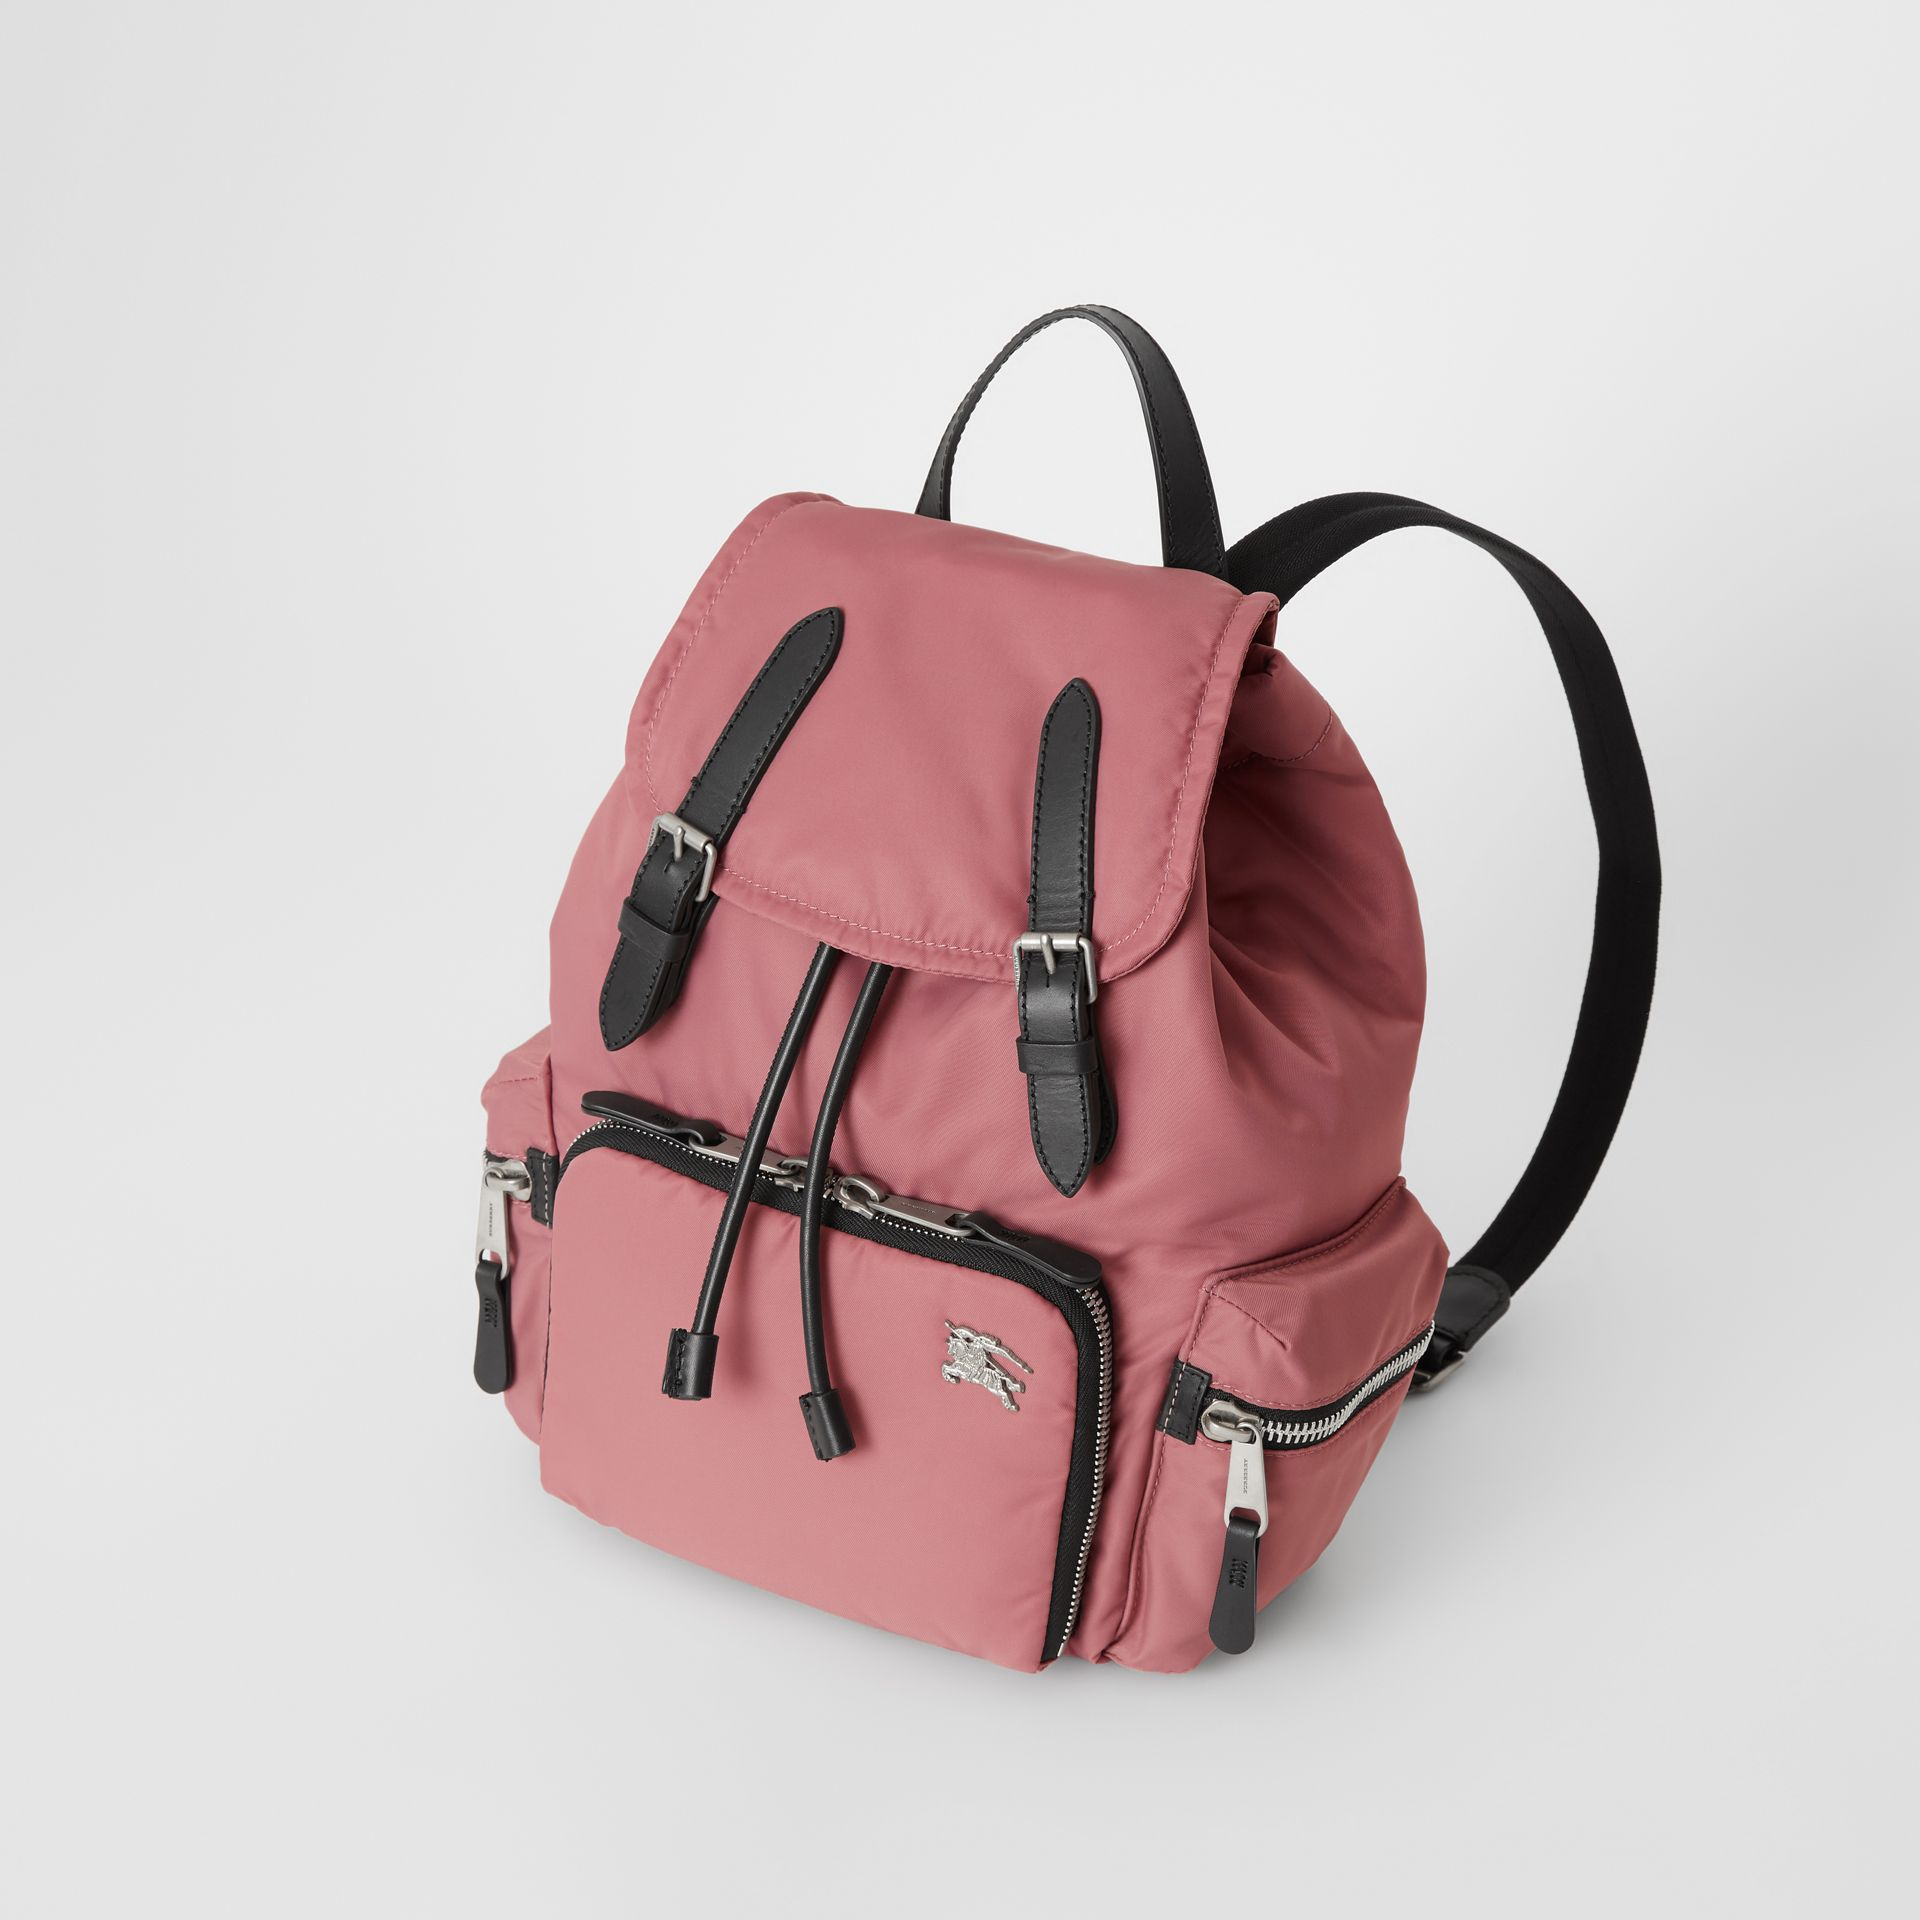 Sac The Rucksack moyen en nylon matelassé et cuir (Rose Mauve) - Femme | Burberry - photo de la galerie 3